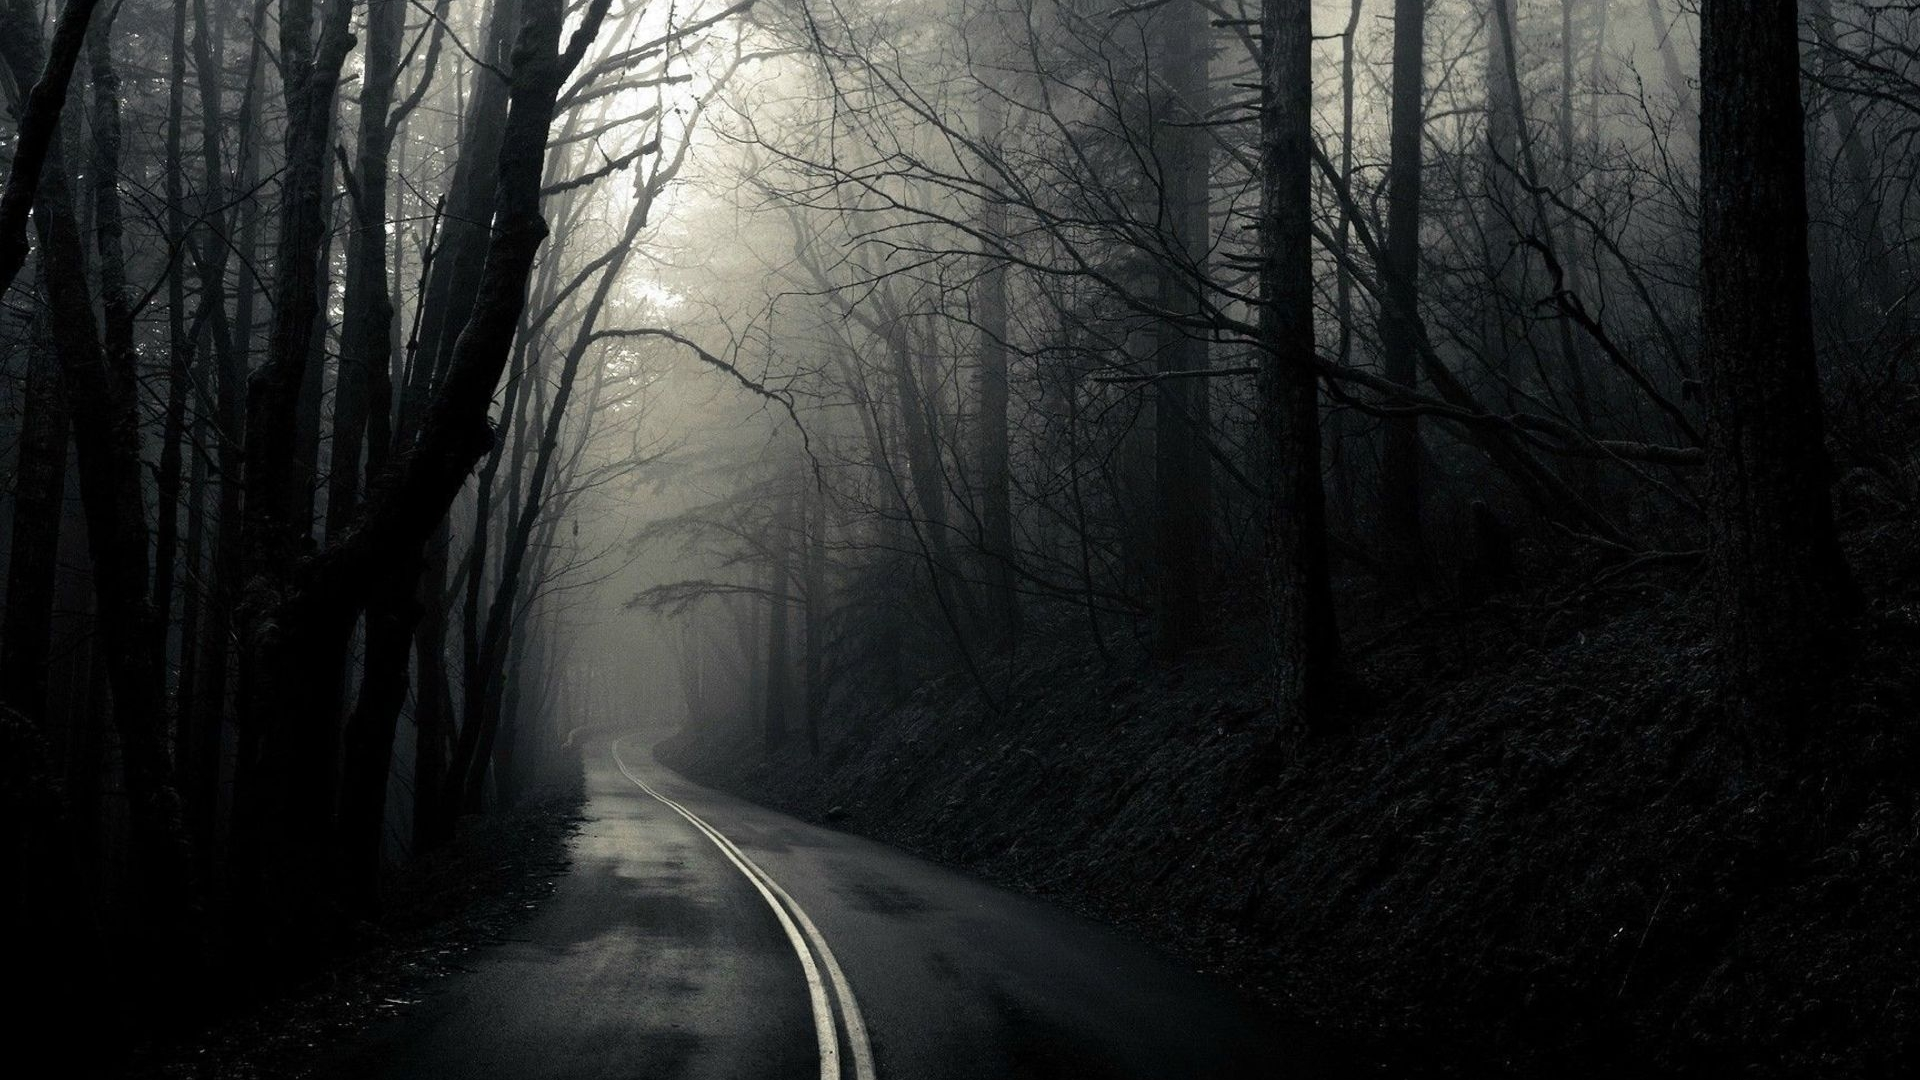 Dark woods picture hd dark woods picture dark woods pictures hd - Man Made Road Wallpaper Download Next Wallpaper Prev Wallpaper Road Through The Dark Woods